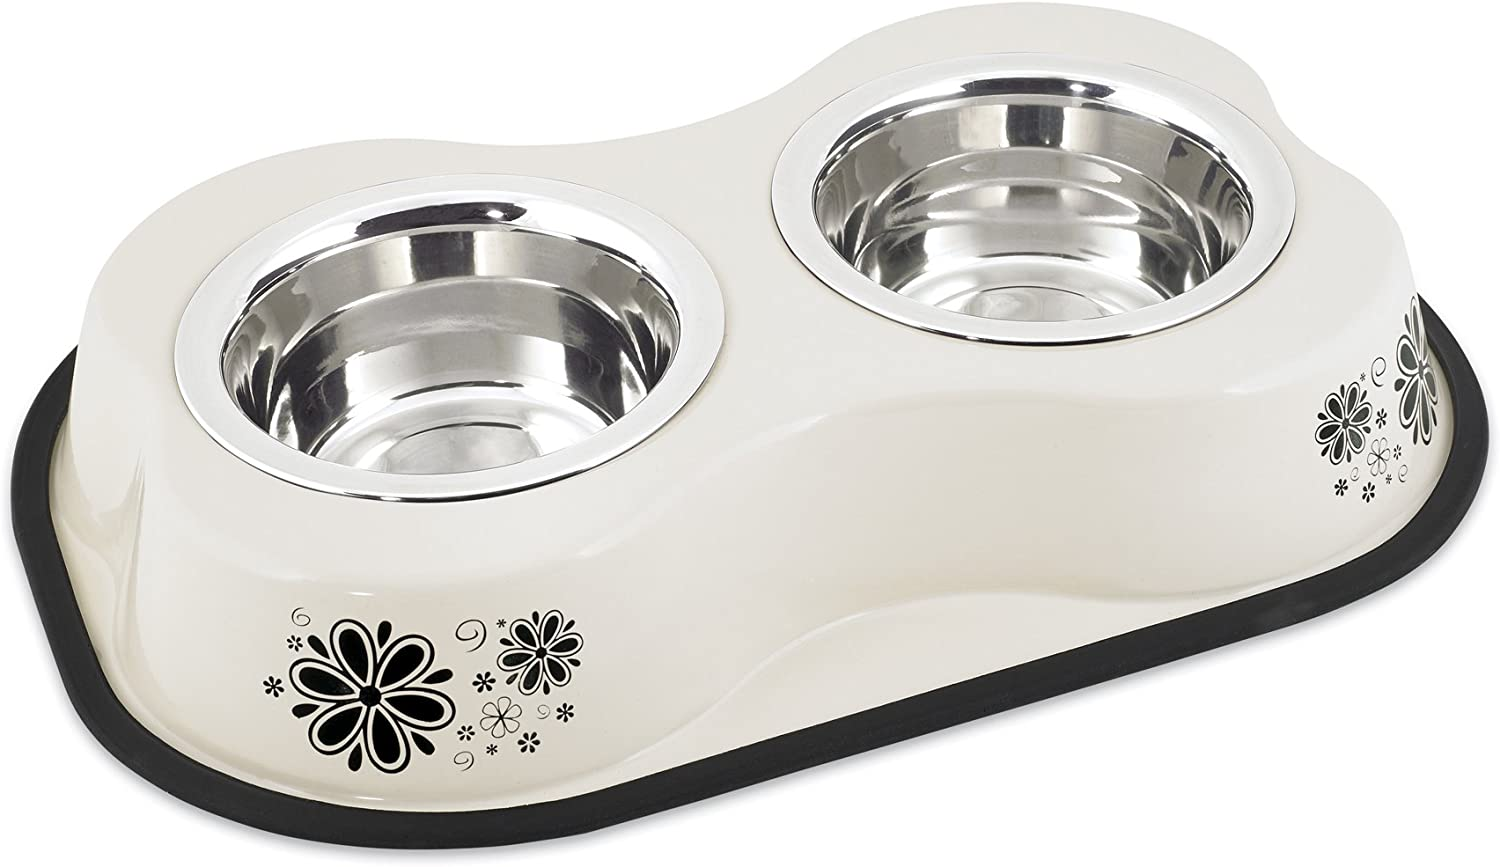 Buddy'S Line Bone Shaped Stainless Steel Double Diners Pet Bowl, 1Pint